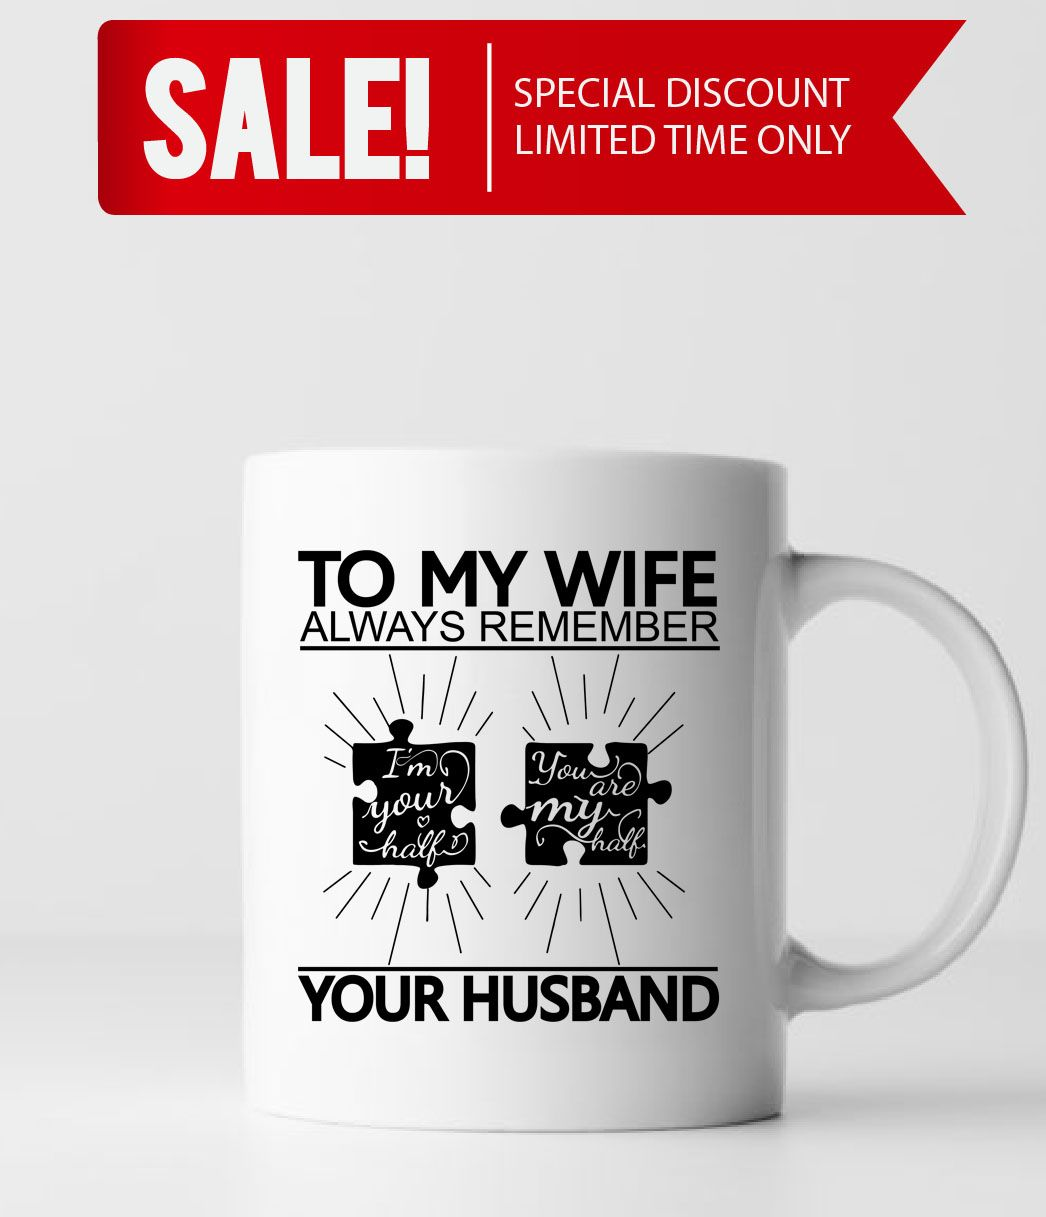 TO MY WIFE YOU ARE MY HALF - Wife gift ideas, wife gifts, wife ...